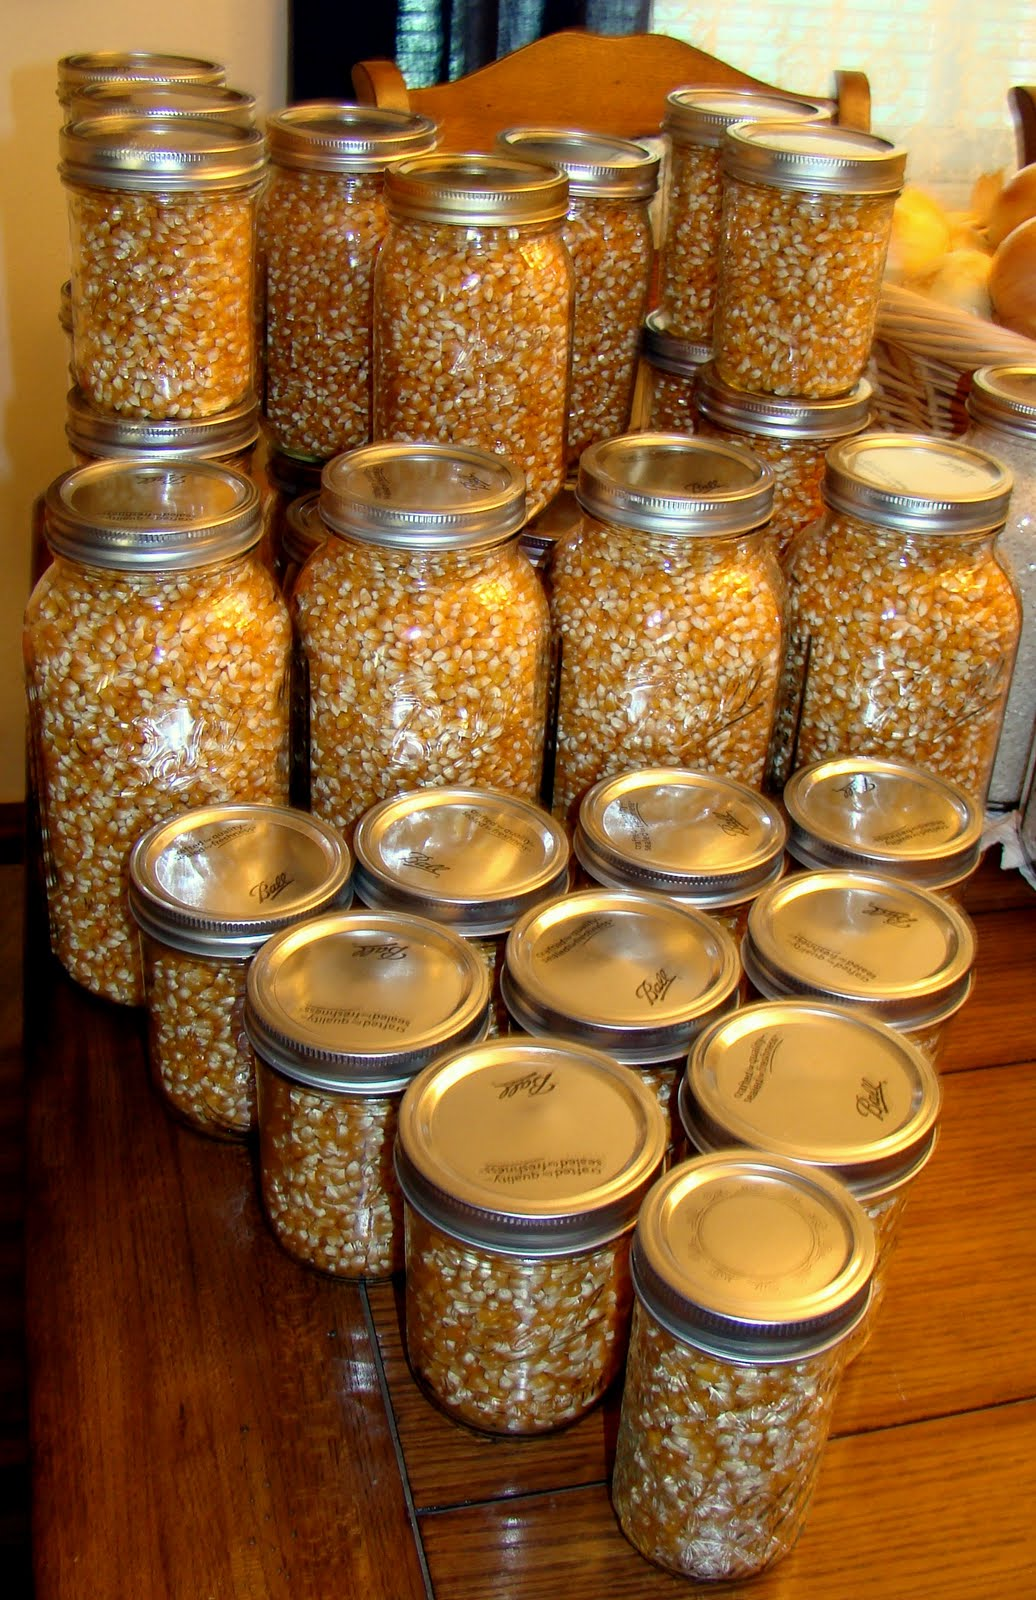 Oregon Gifts of Comfort and Joy ~ Kathy Matthews & Emergency Preparedness and Self-Reliant Living: Buying in Bulk and ...